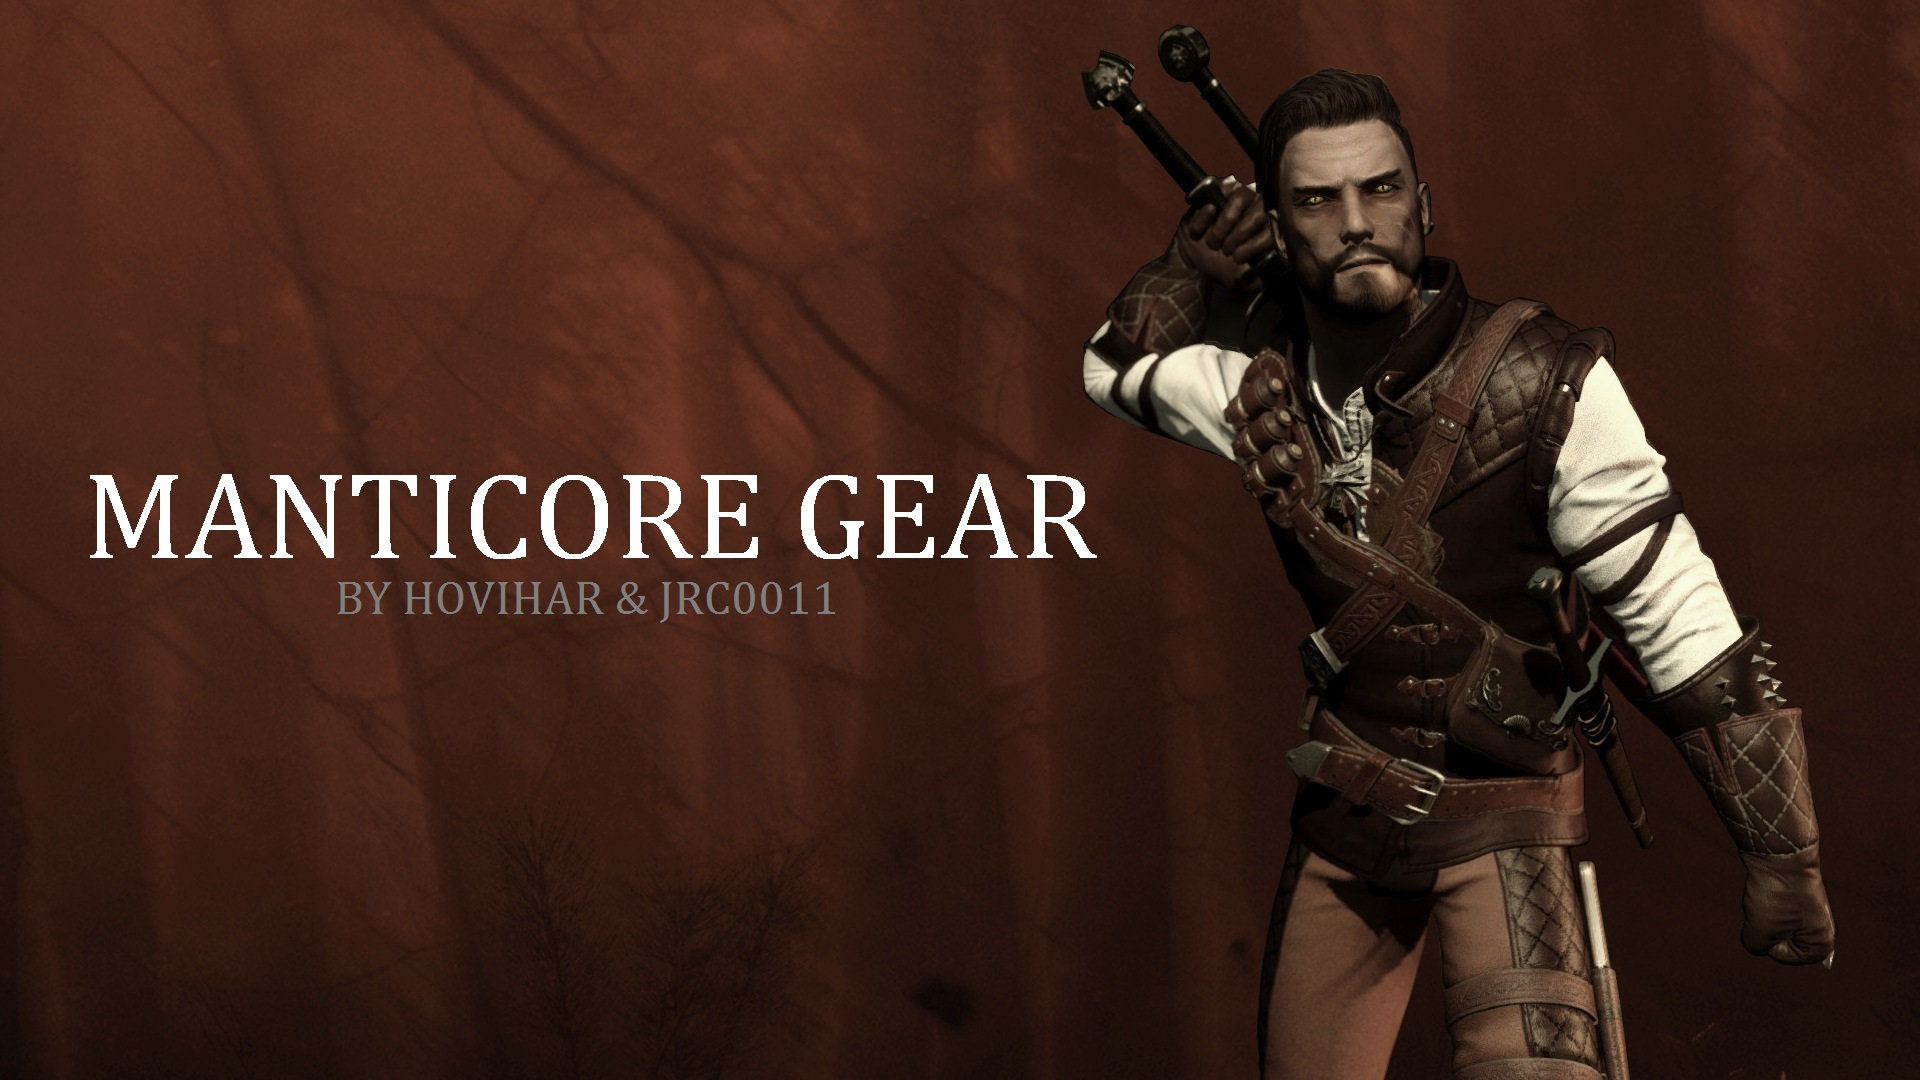 Manticore Gear - The Witcher 3 01.jpg